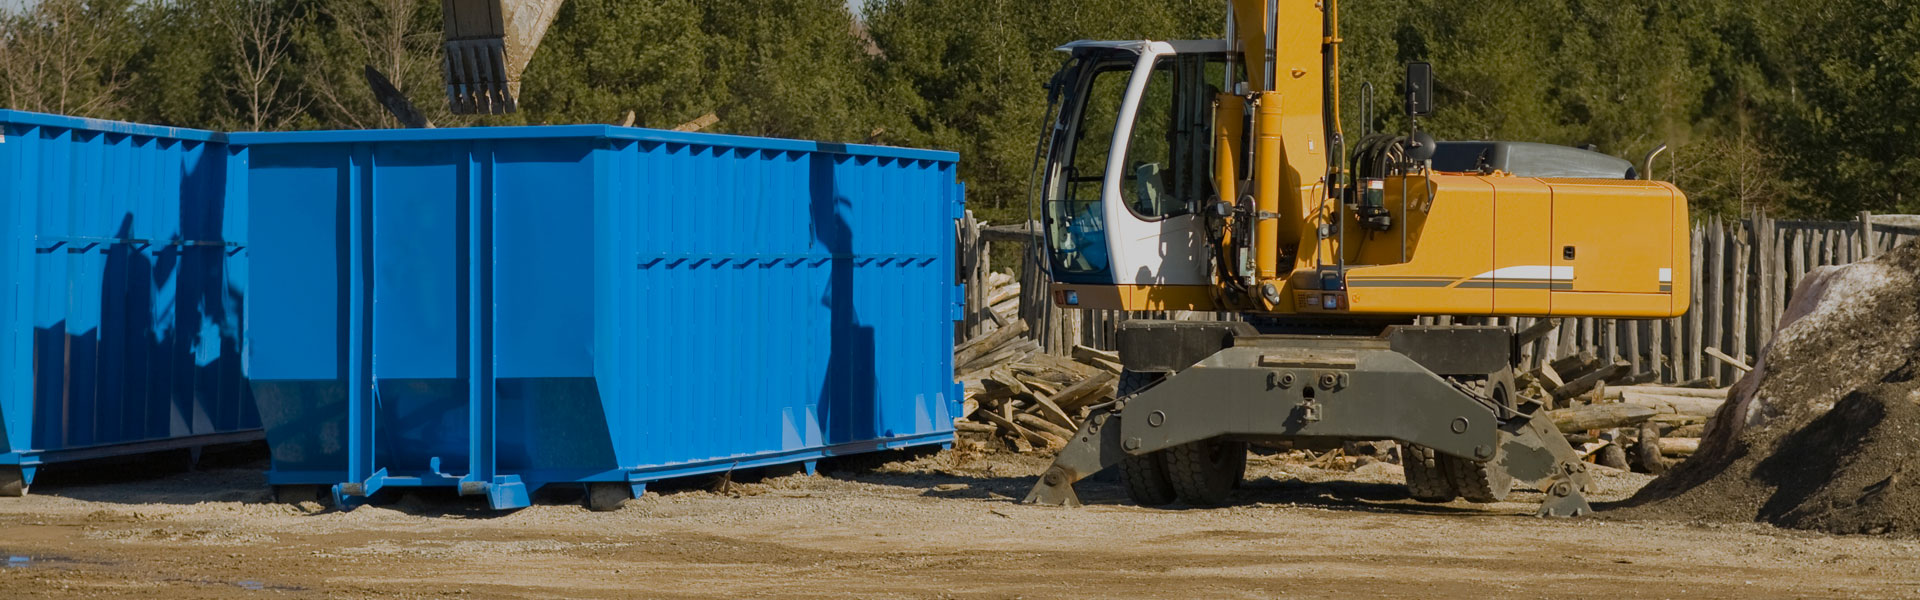 Porta Potty Rental | Septic Pumping | Texas Waste Co